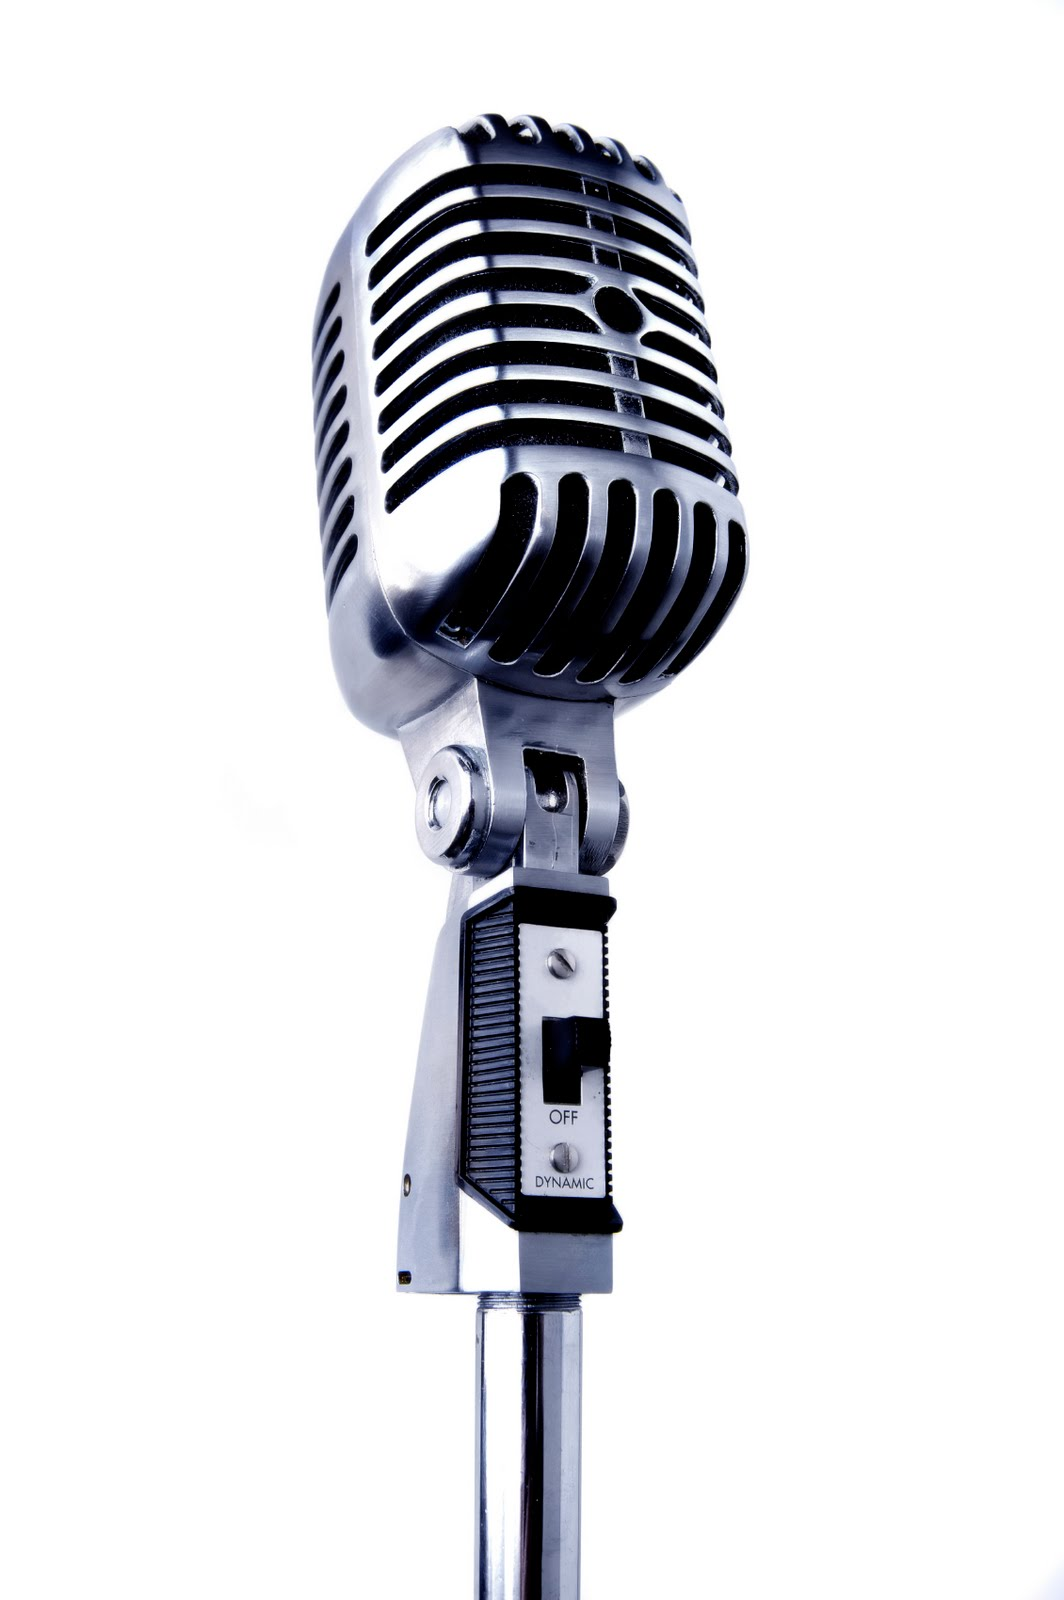 check audio and mic